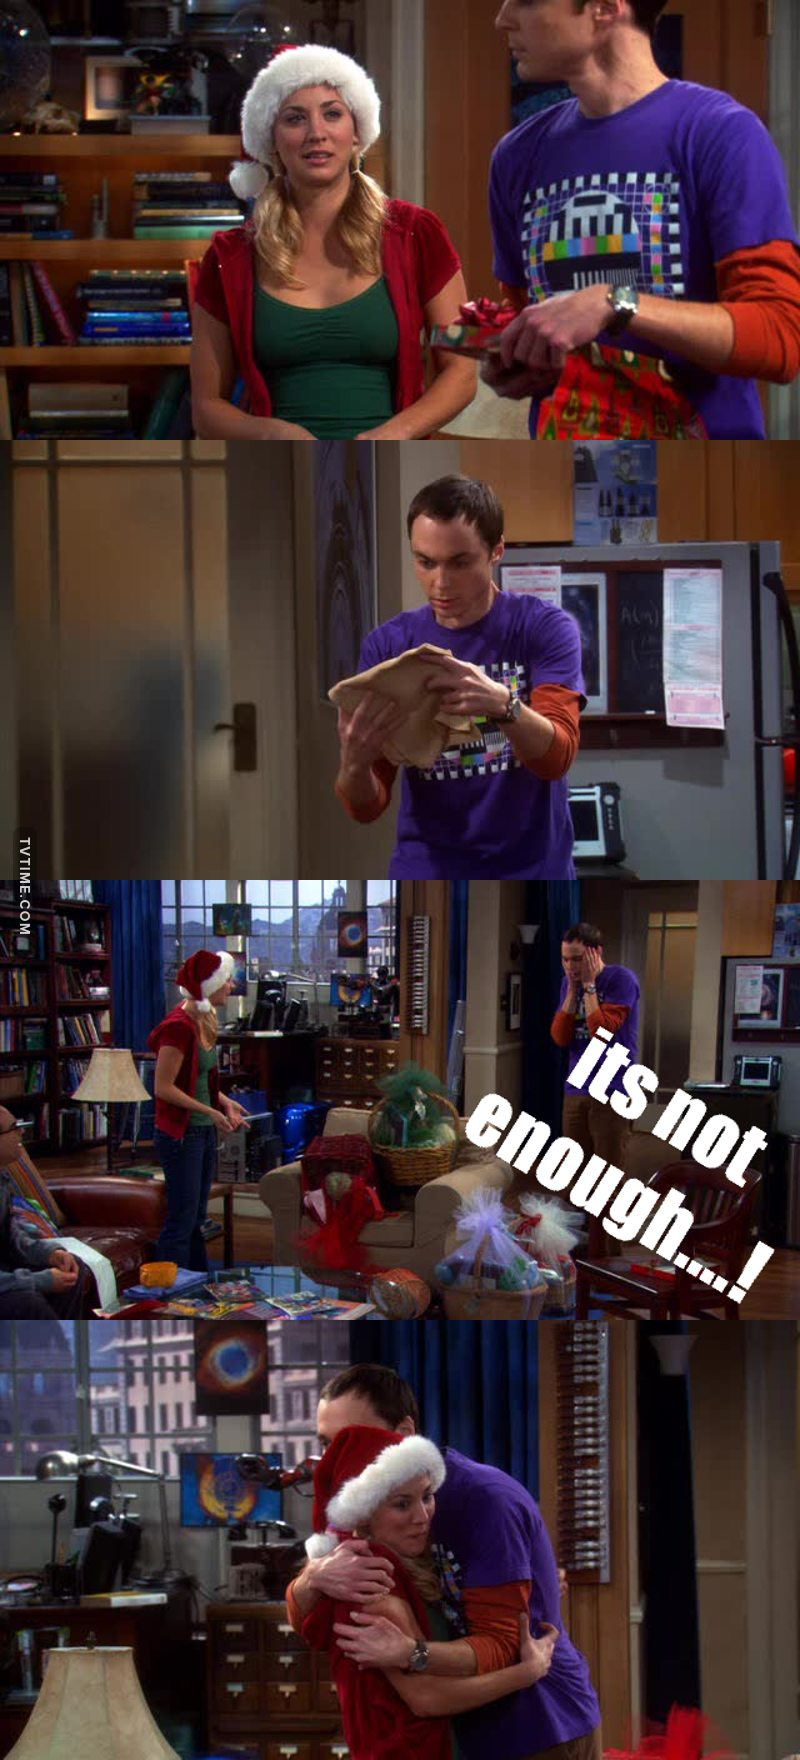 The best scenes ever....topped of with a RARE Sheldon Hug...lol